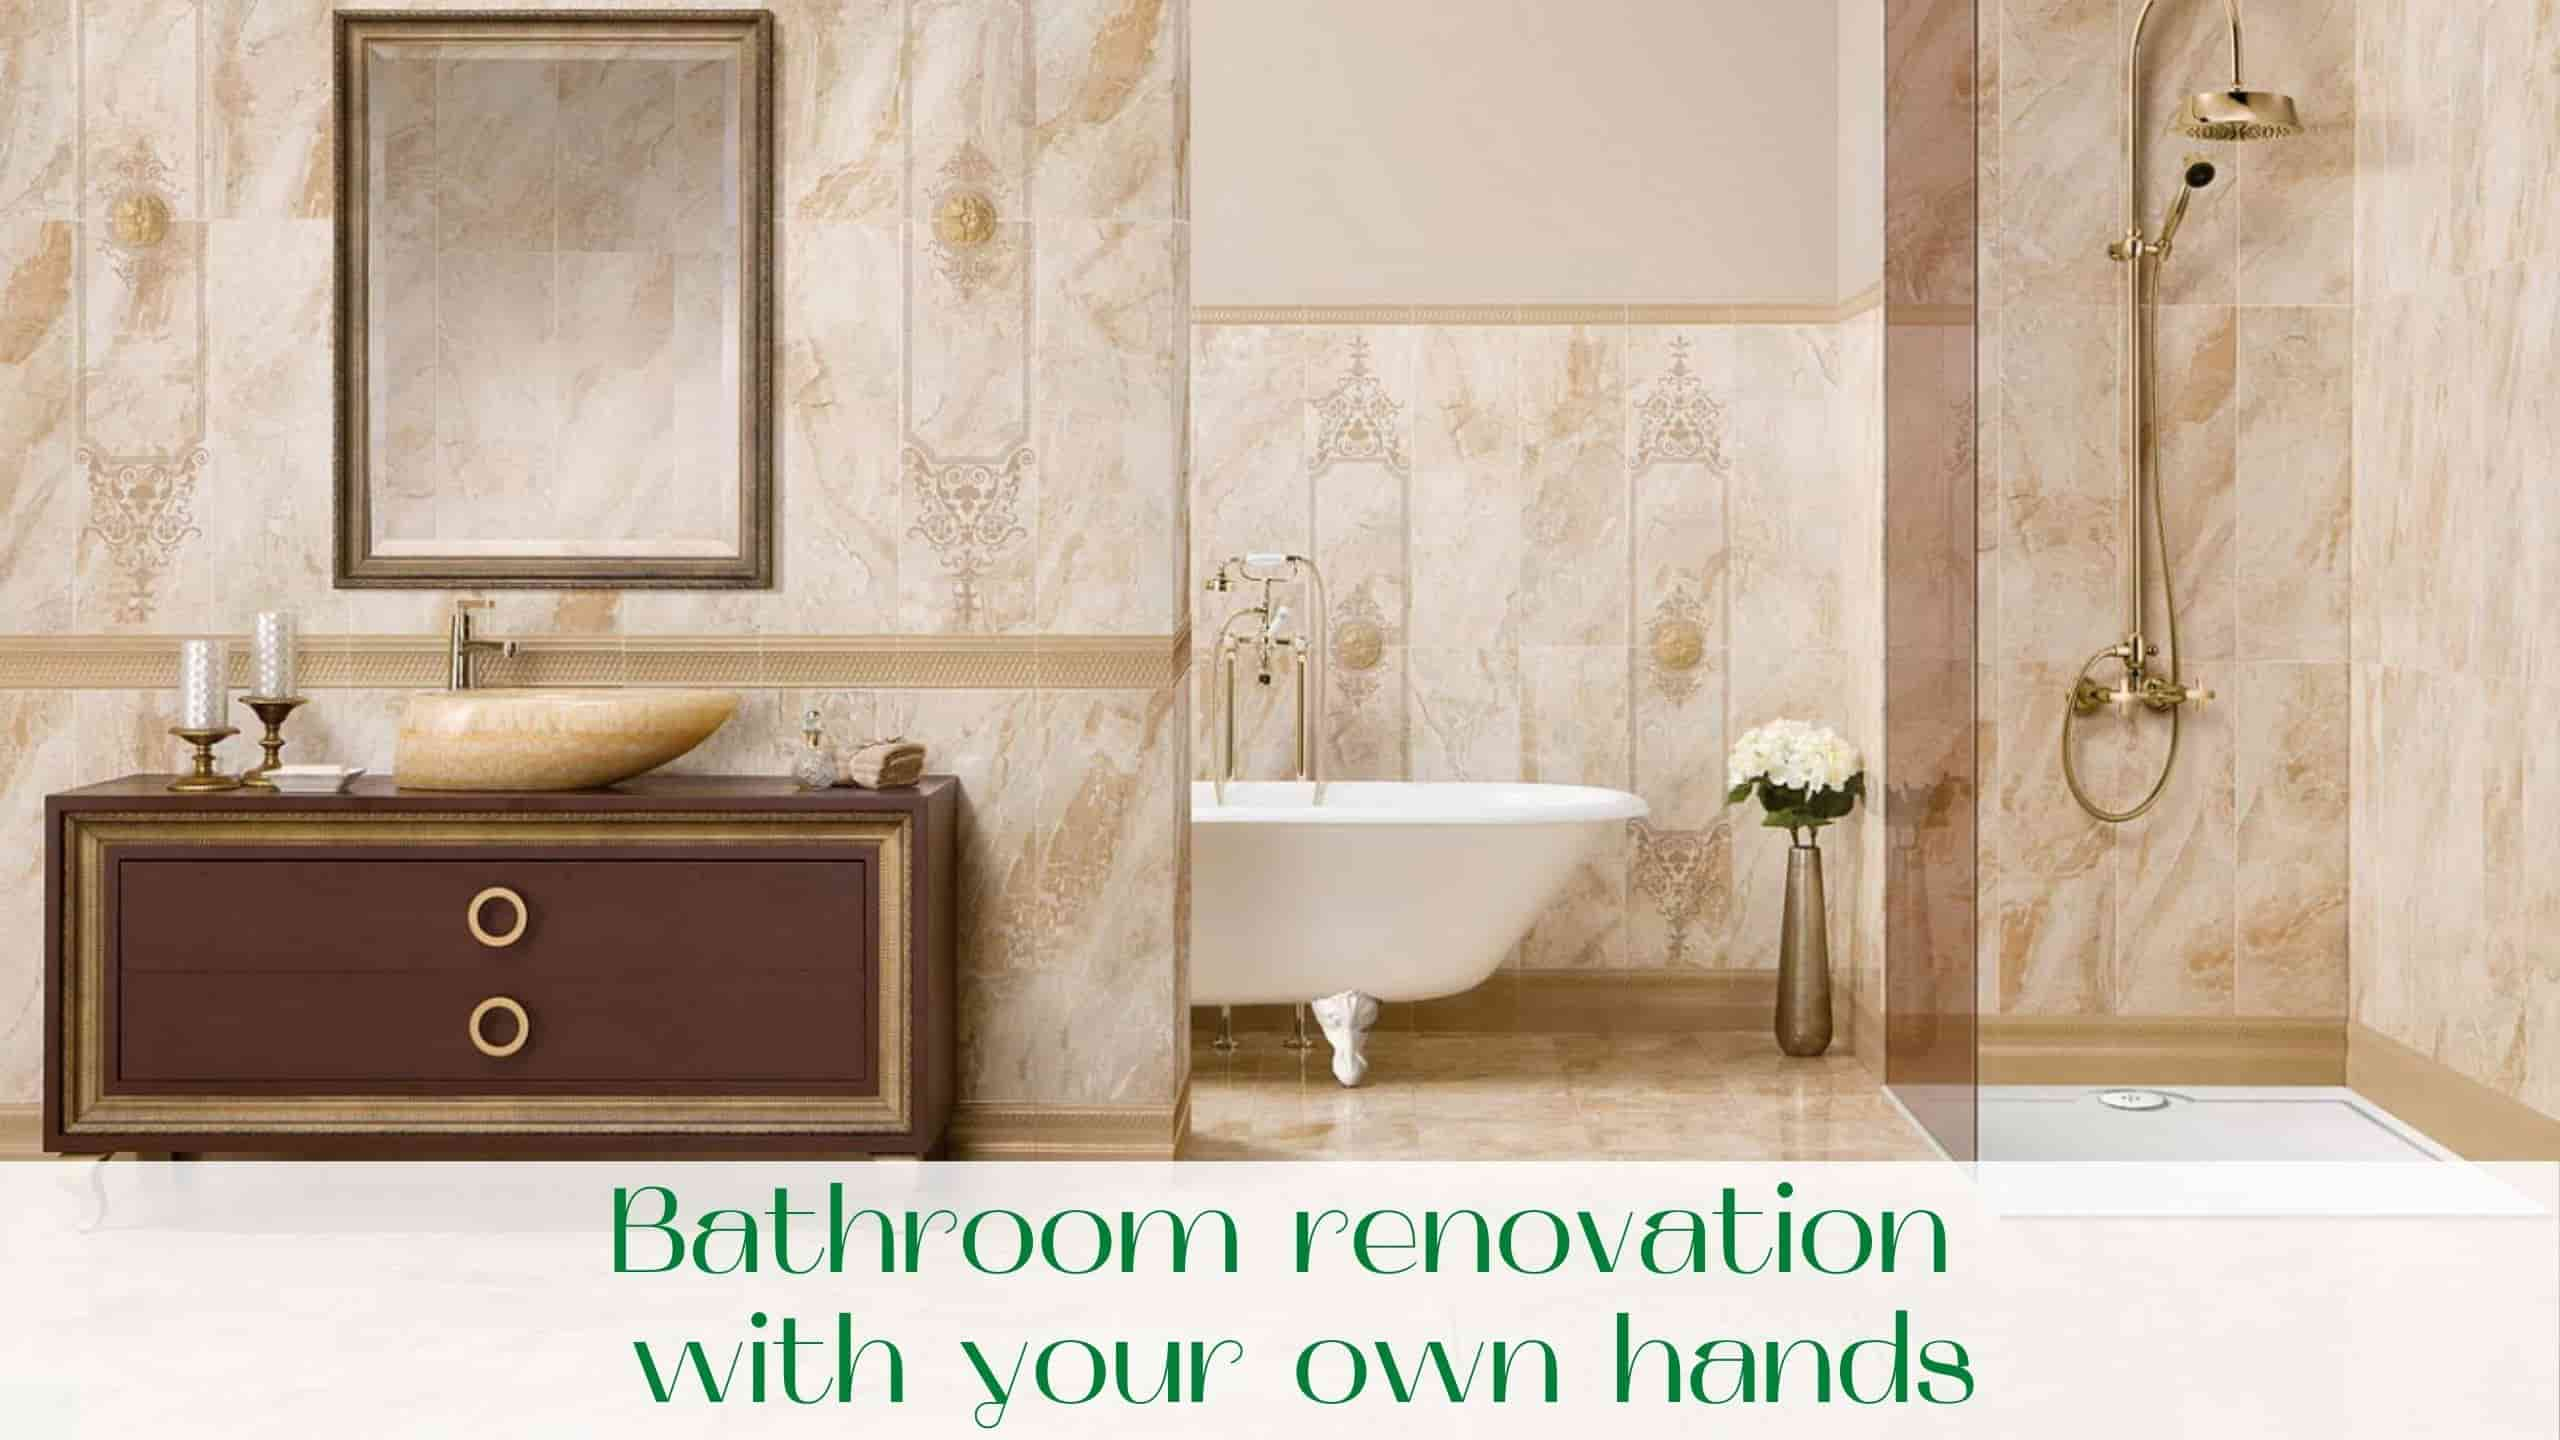 image-bathroom-renovation-with-your-own-hands-min